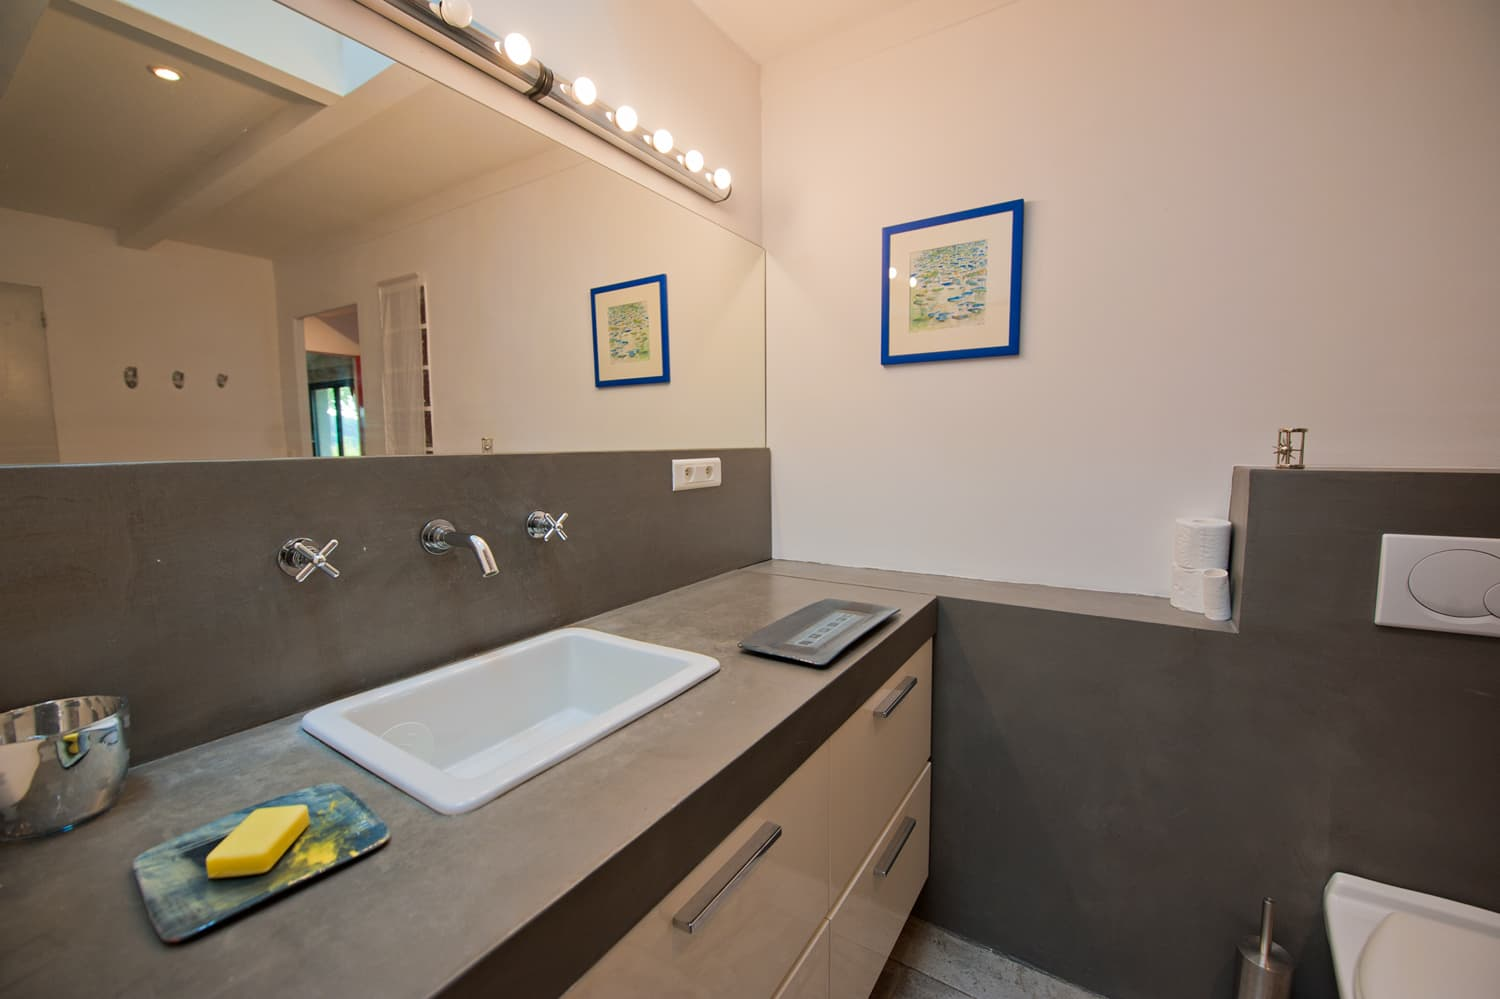 Bathroom in Dordogne self-catering accommodation